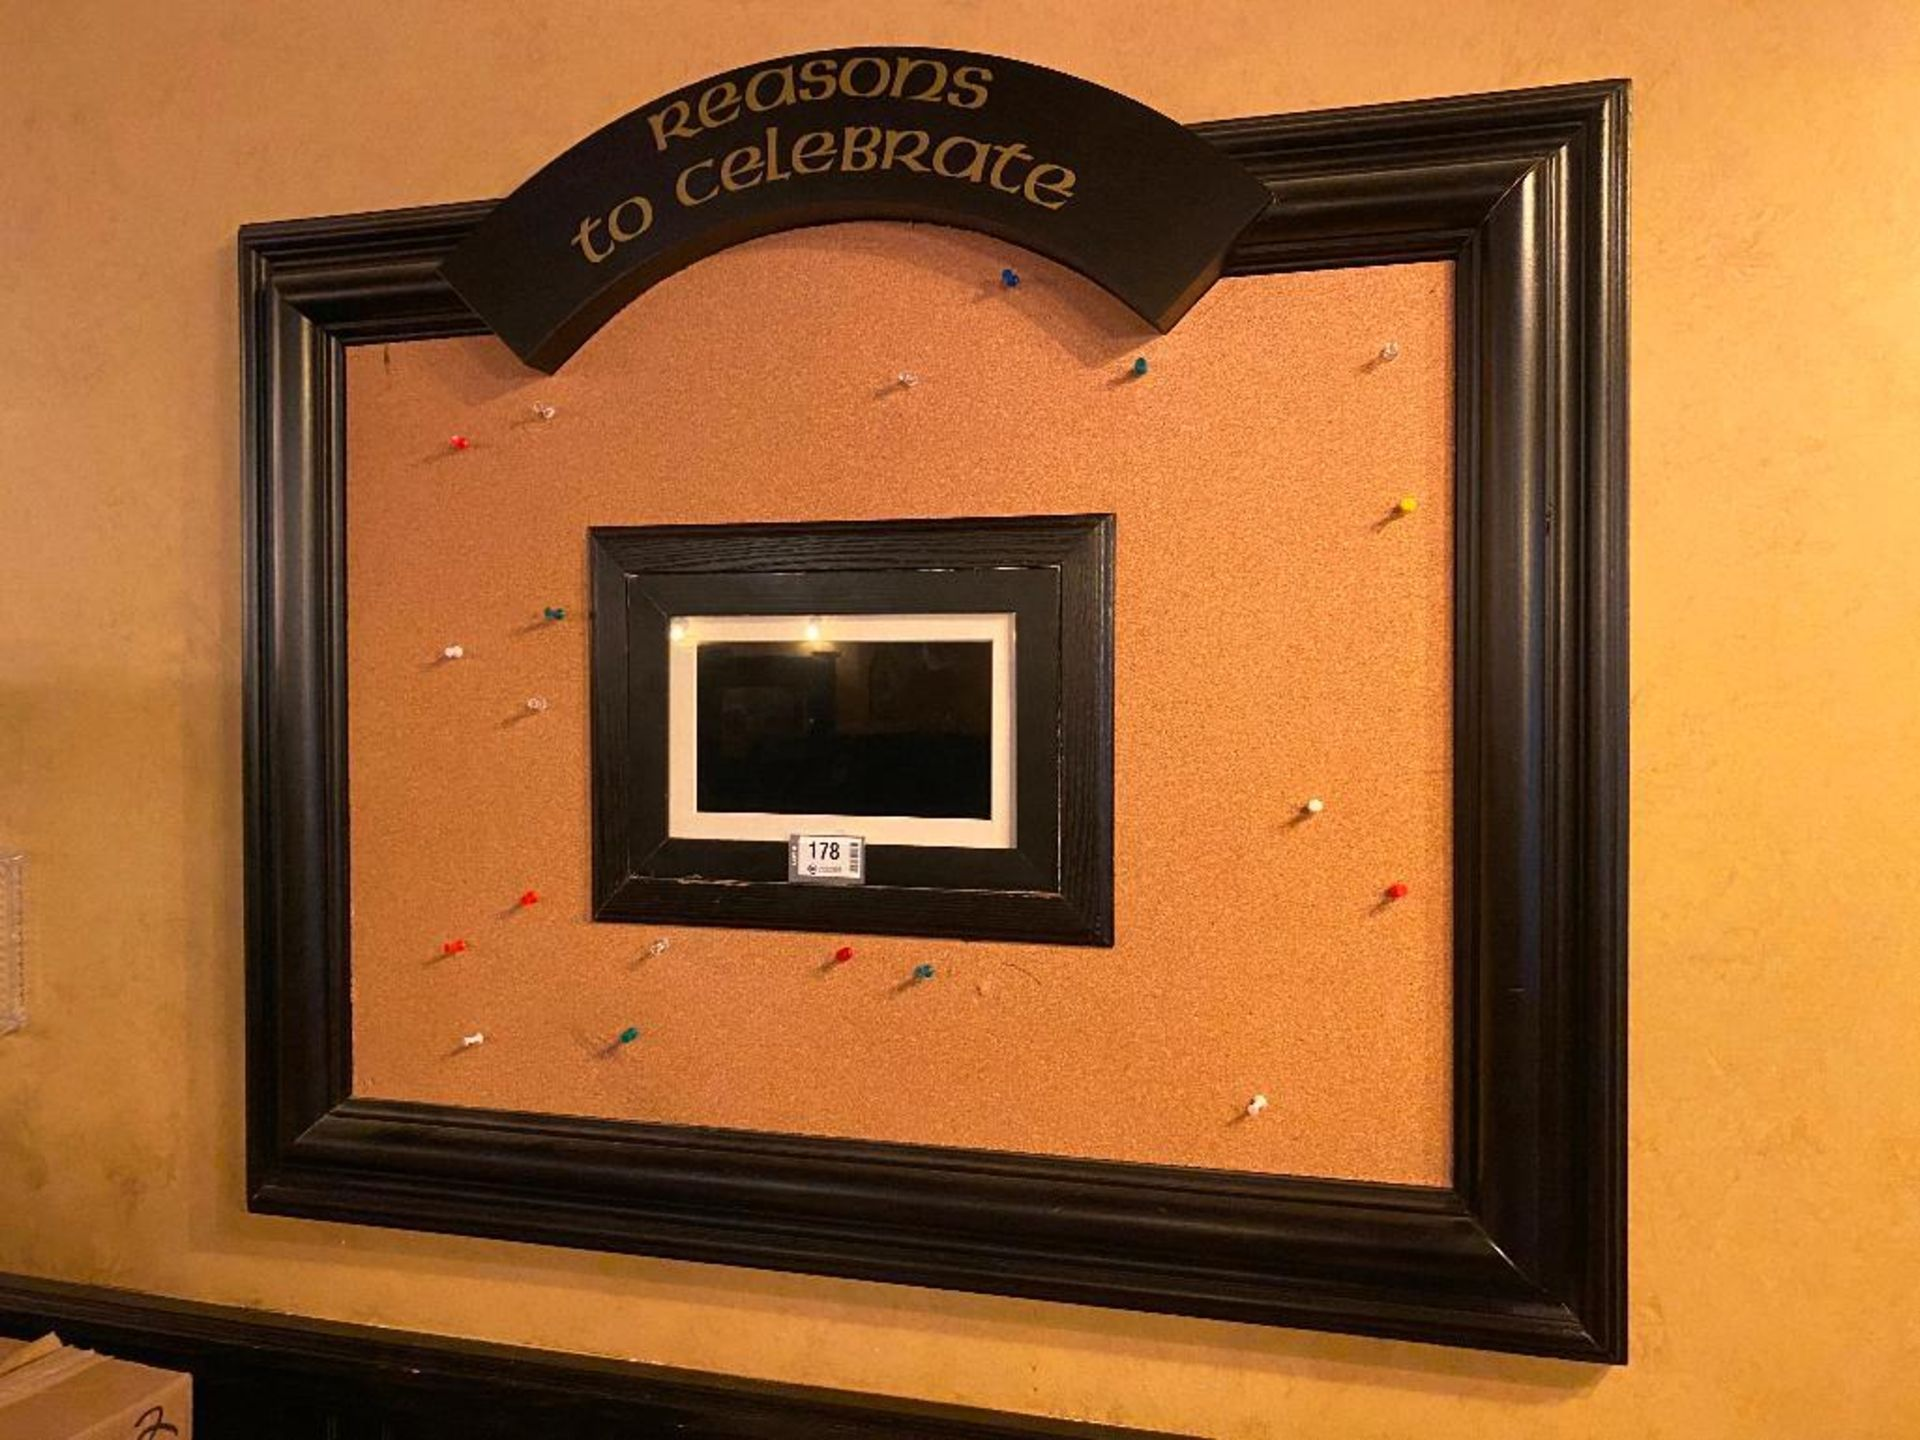 REASONS TO CELEBRATE BOARD WITH DIGITAL PHOTO FRAME - NOTE: REQUIRES REMOVAL FROM WALL, PLEASE INSPE